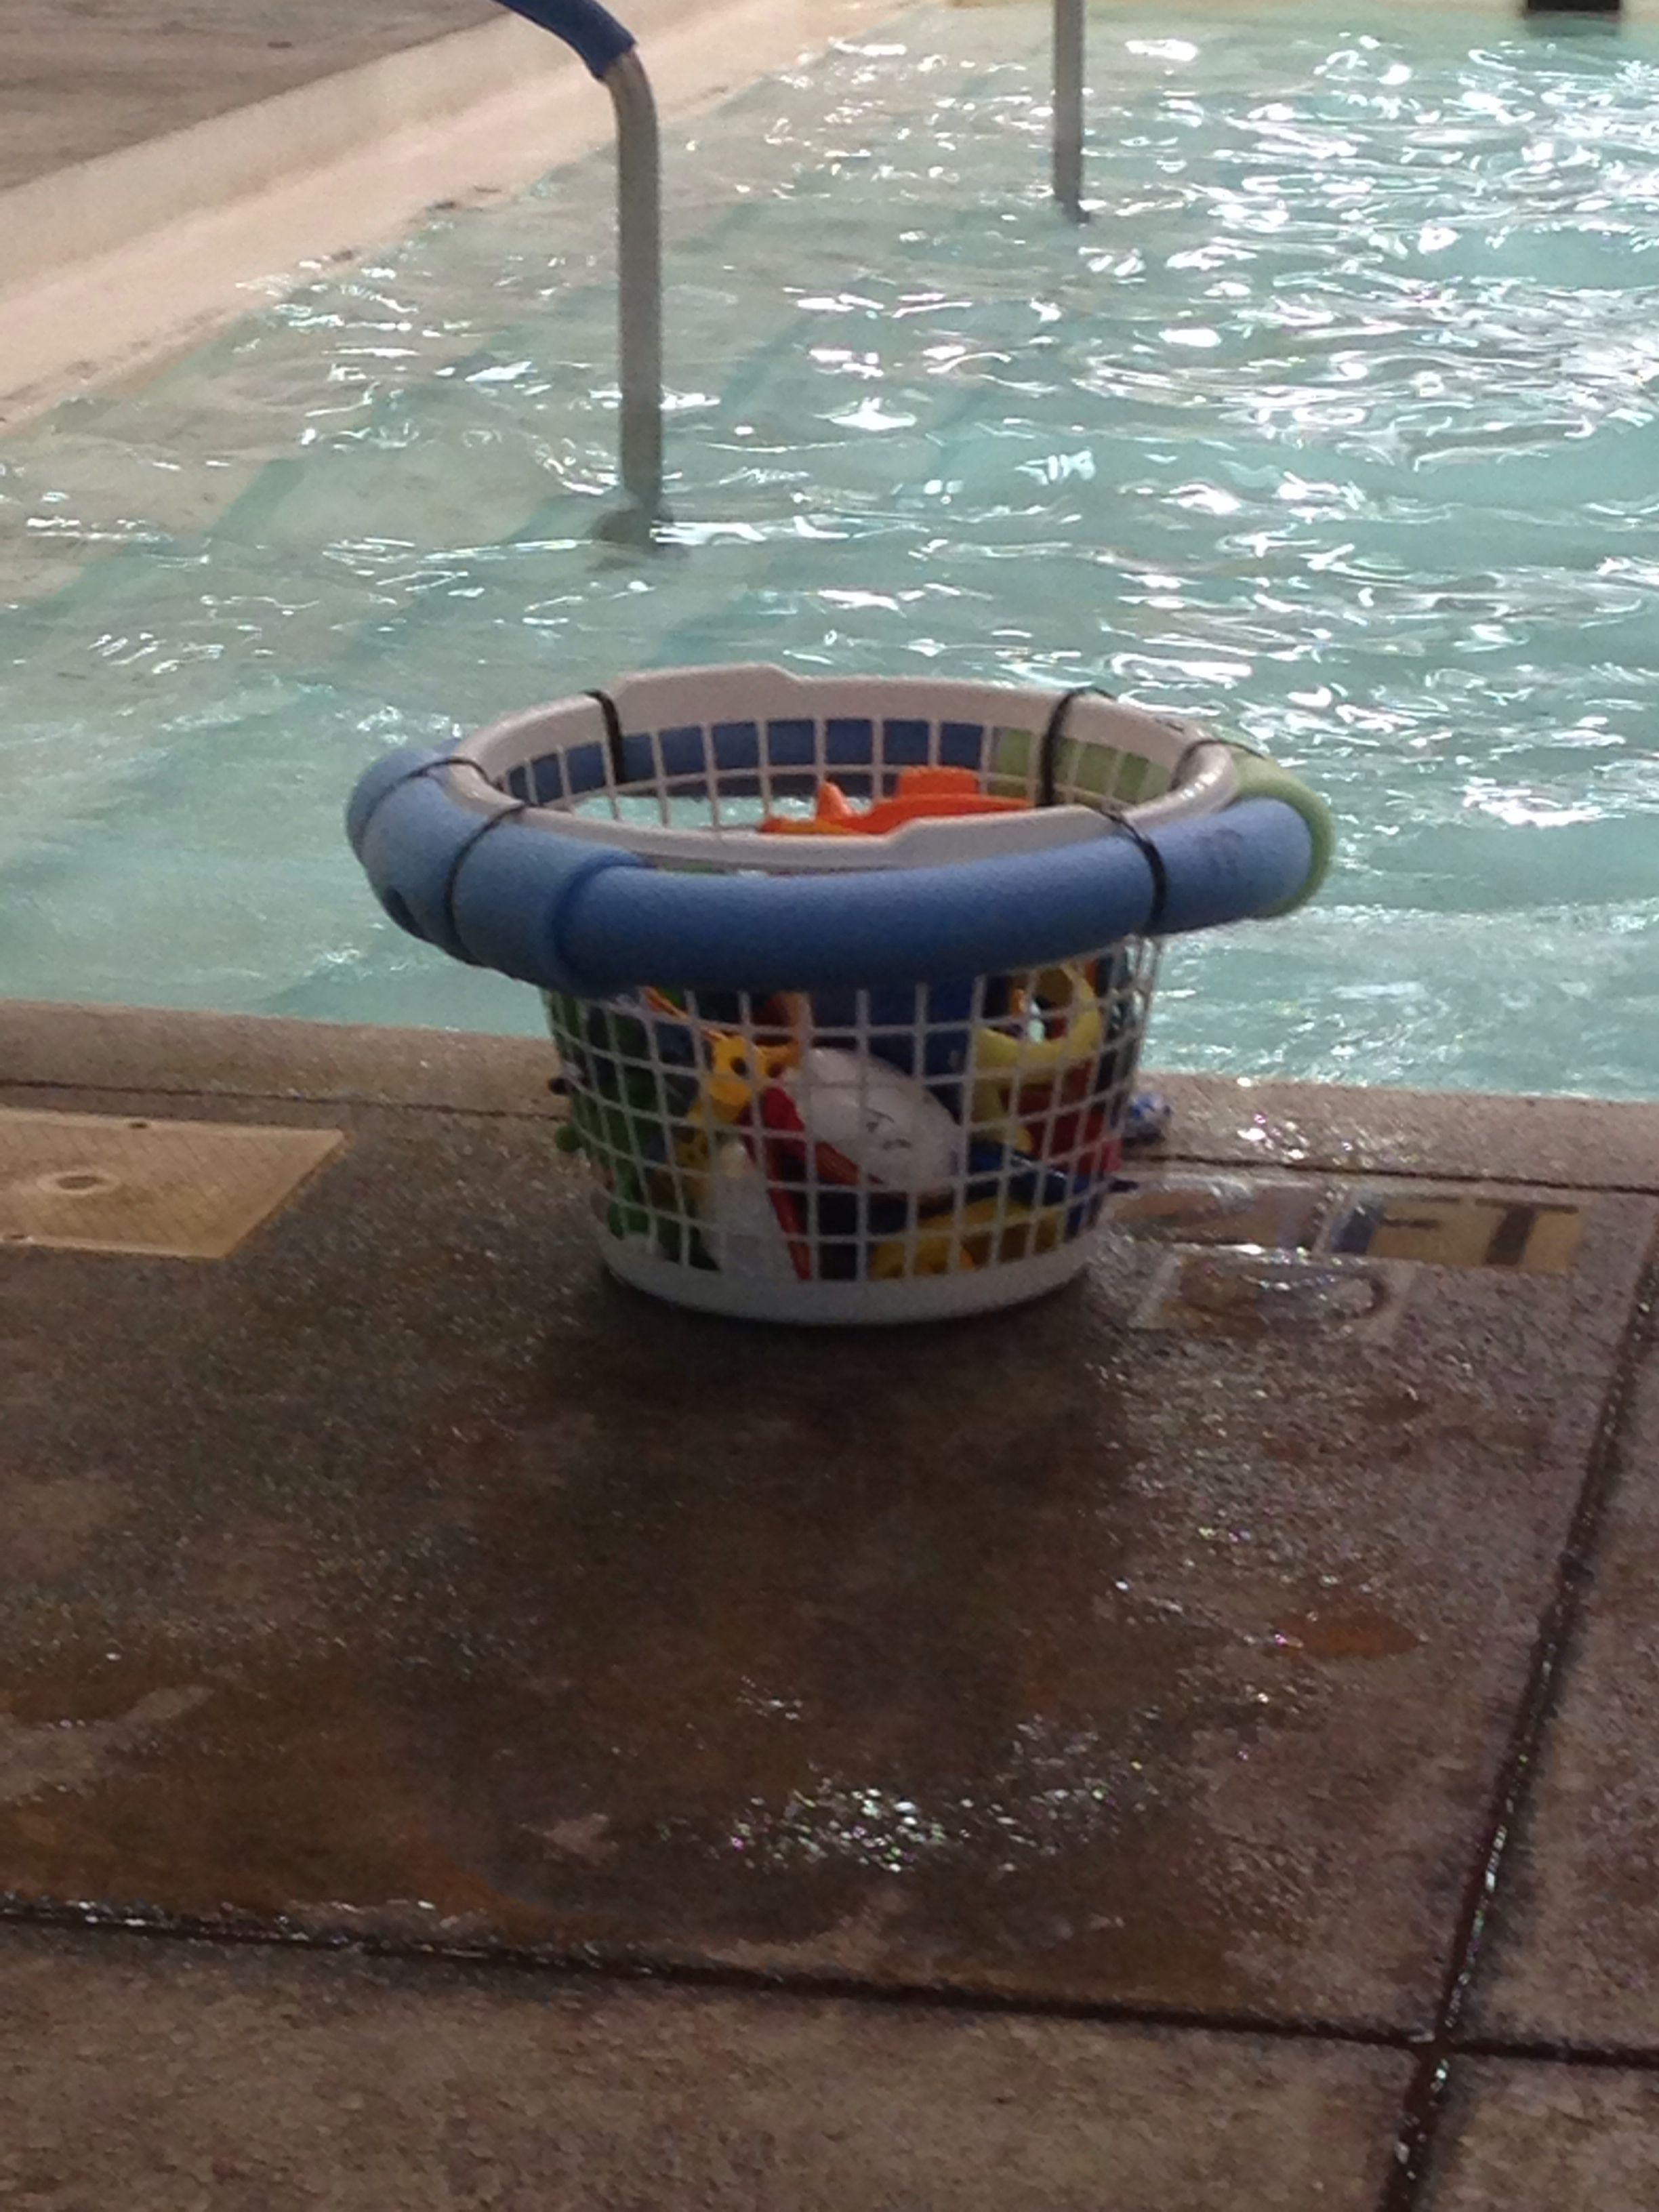 Great Idea Pool Noodle Attached To A Basket With Zip Ties To Make A Floatable You Bin